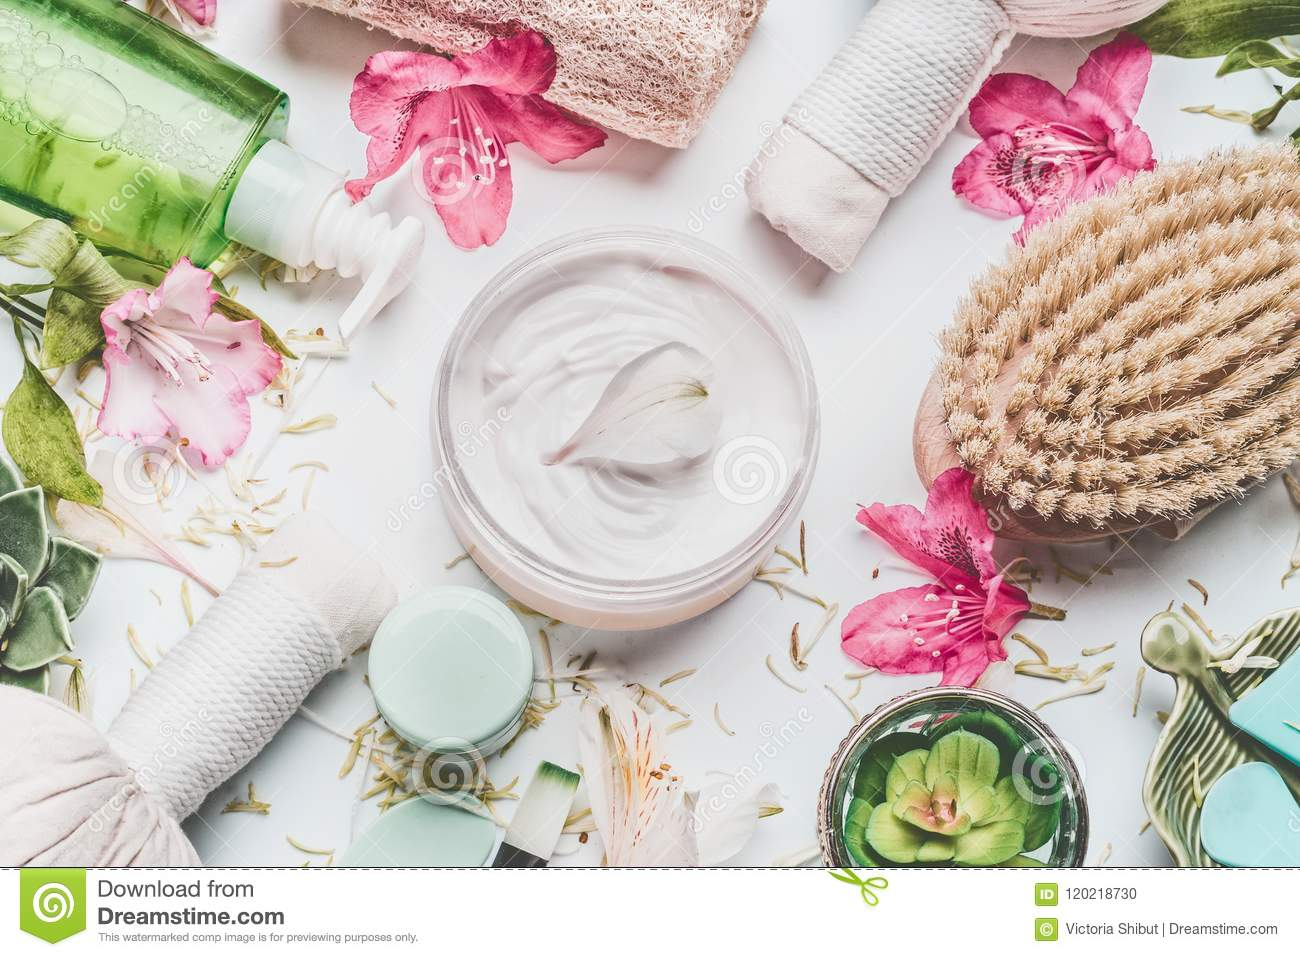 Skin cream with flowers petals and others body care cosmetic products and accessories on white background